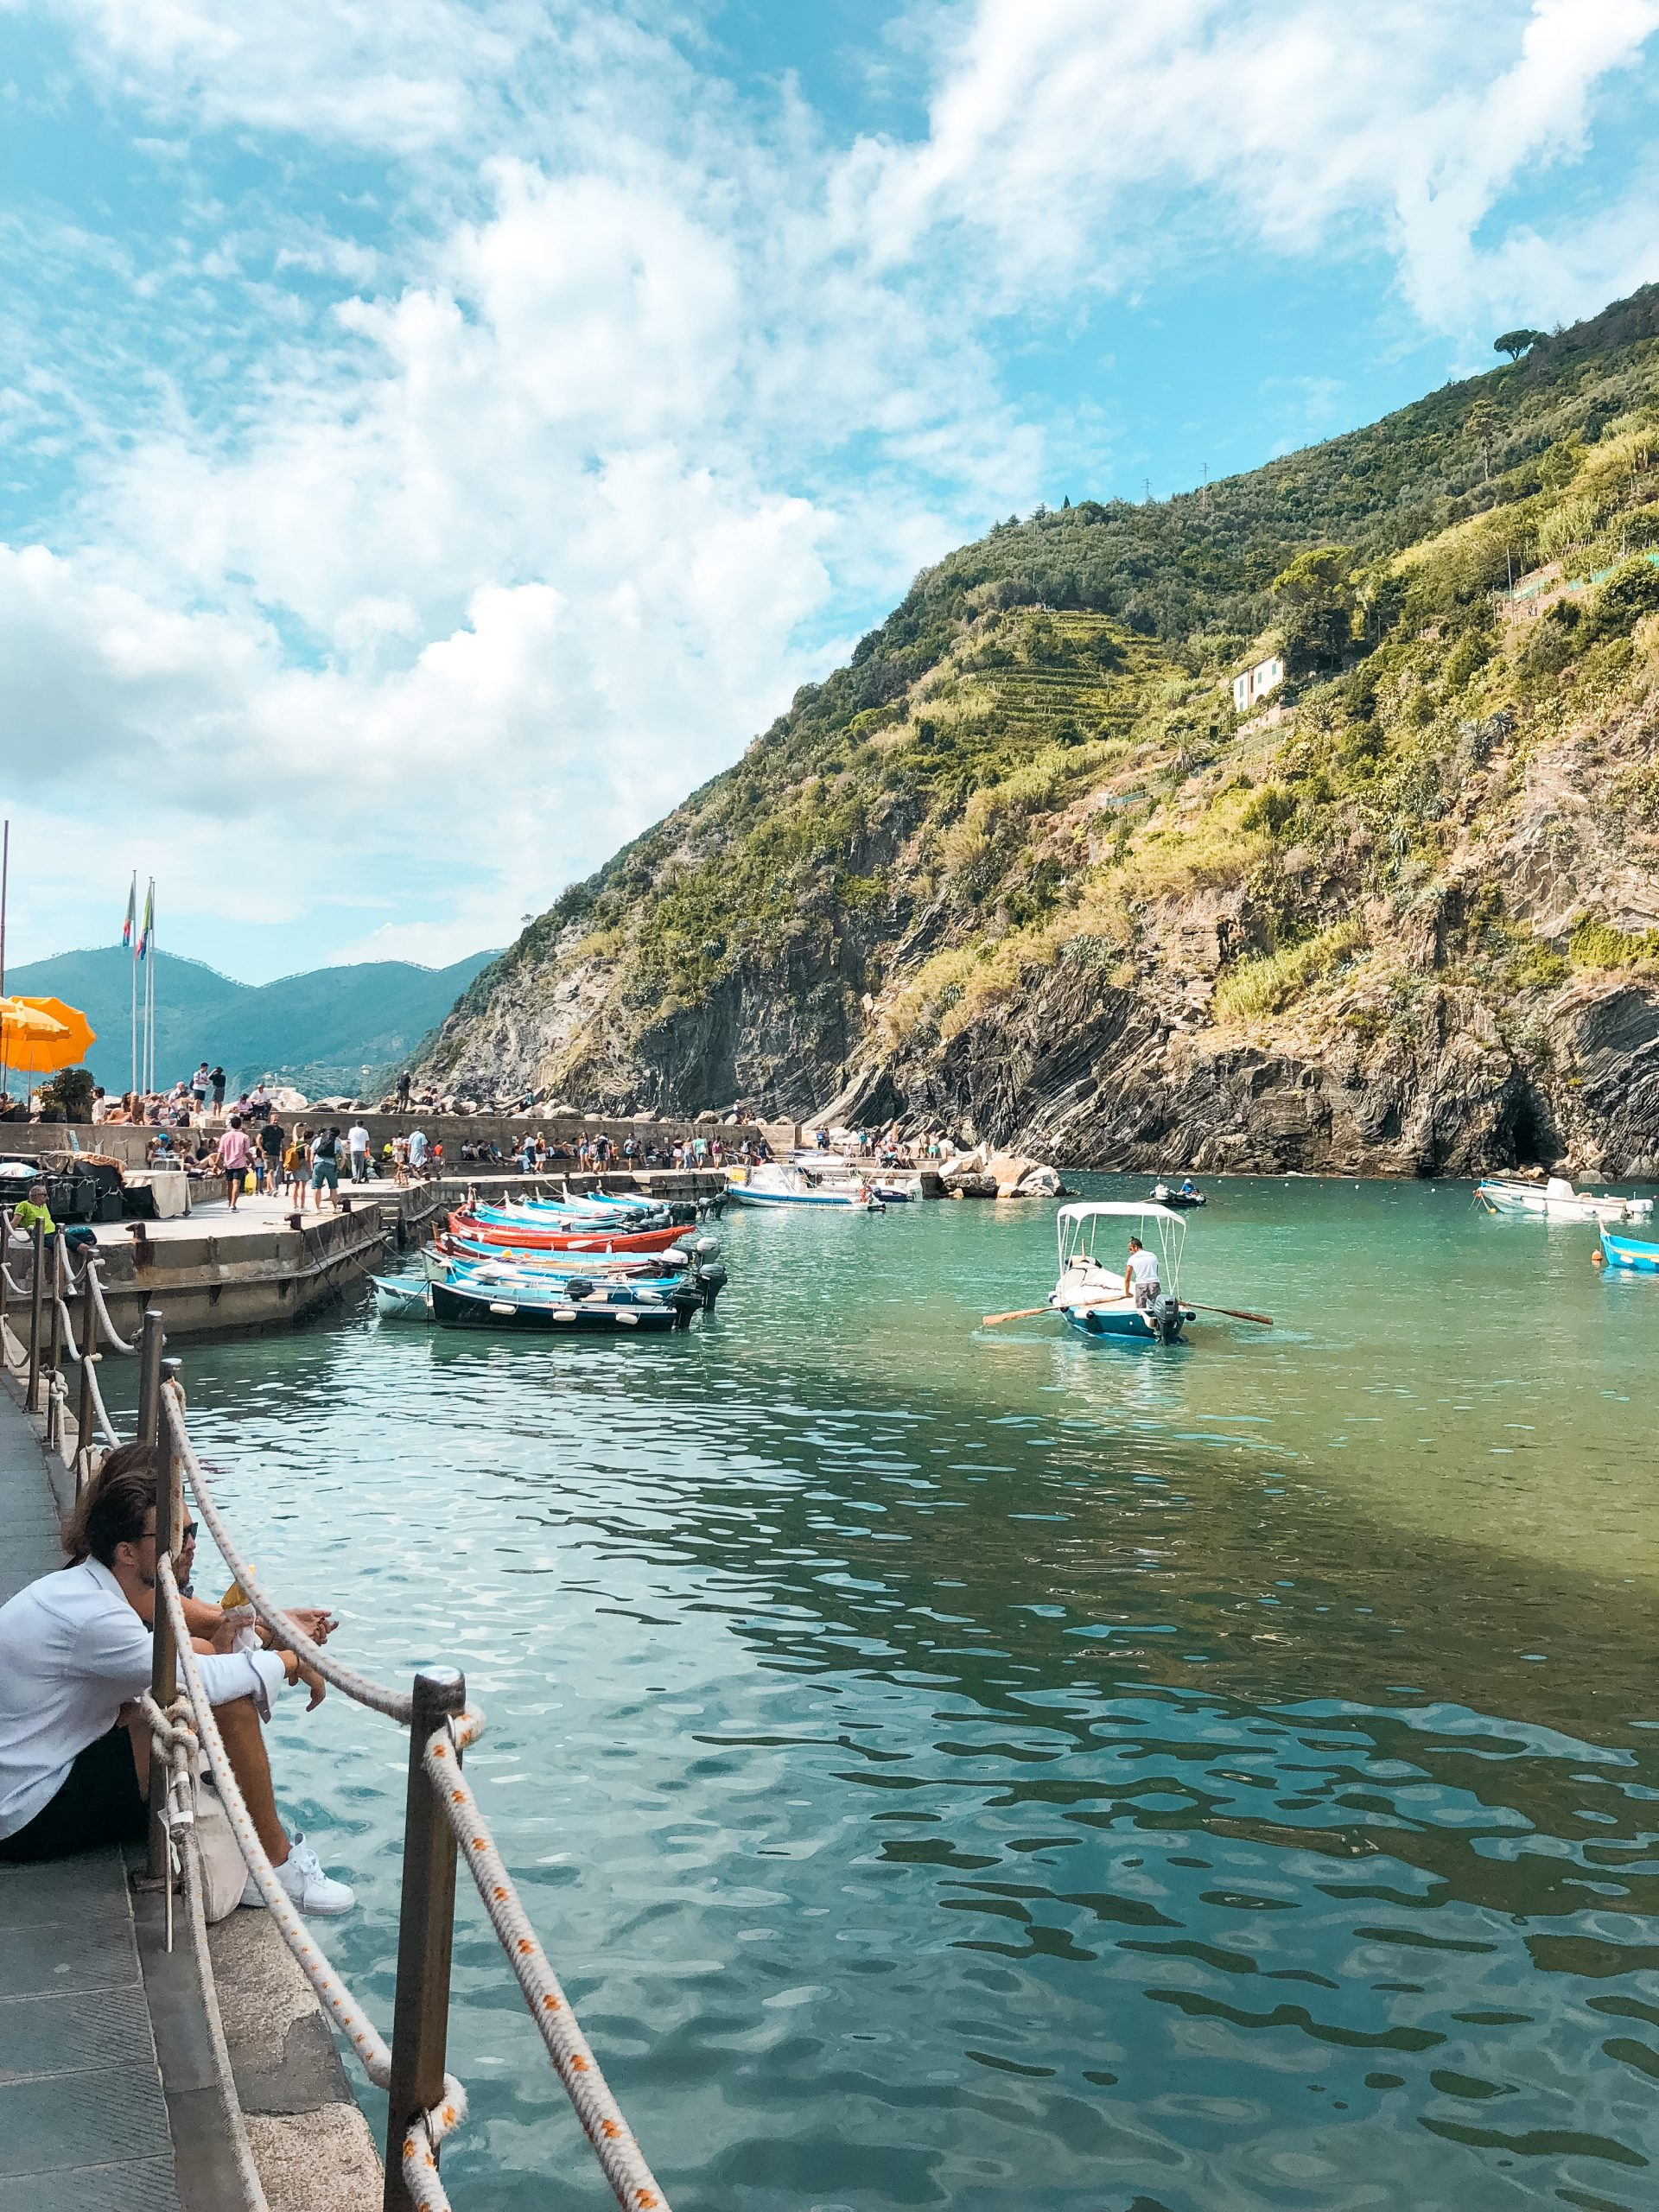 the water near Vernazza with boats and a large cliff